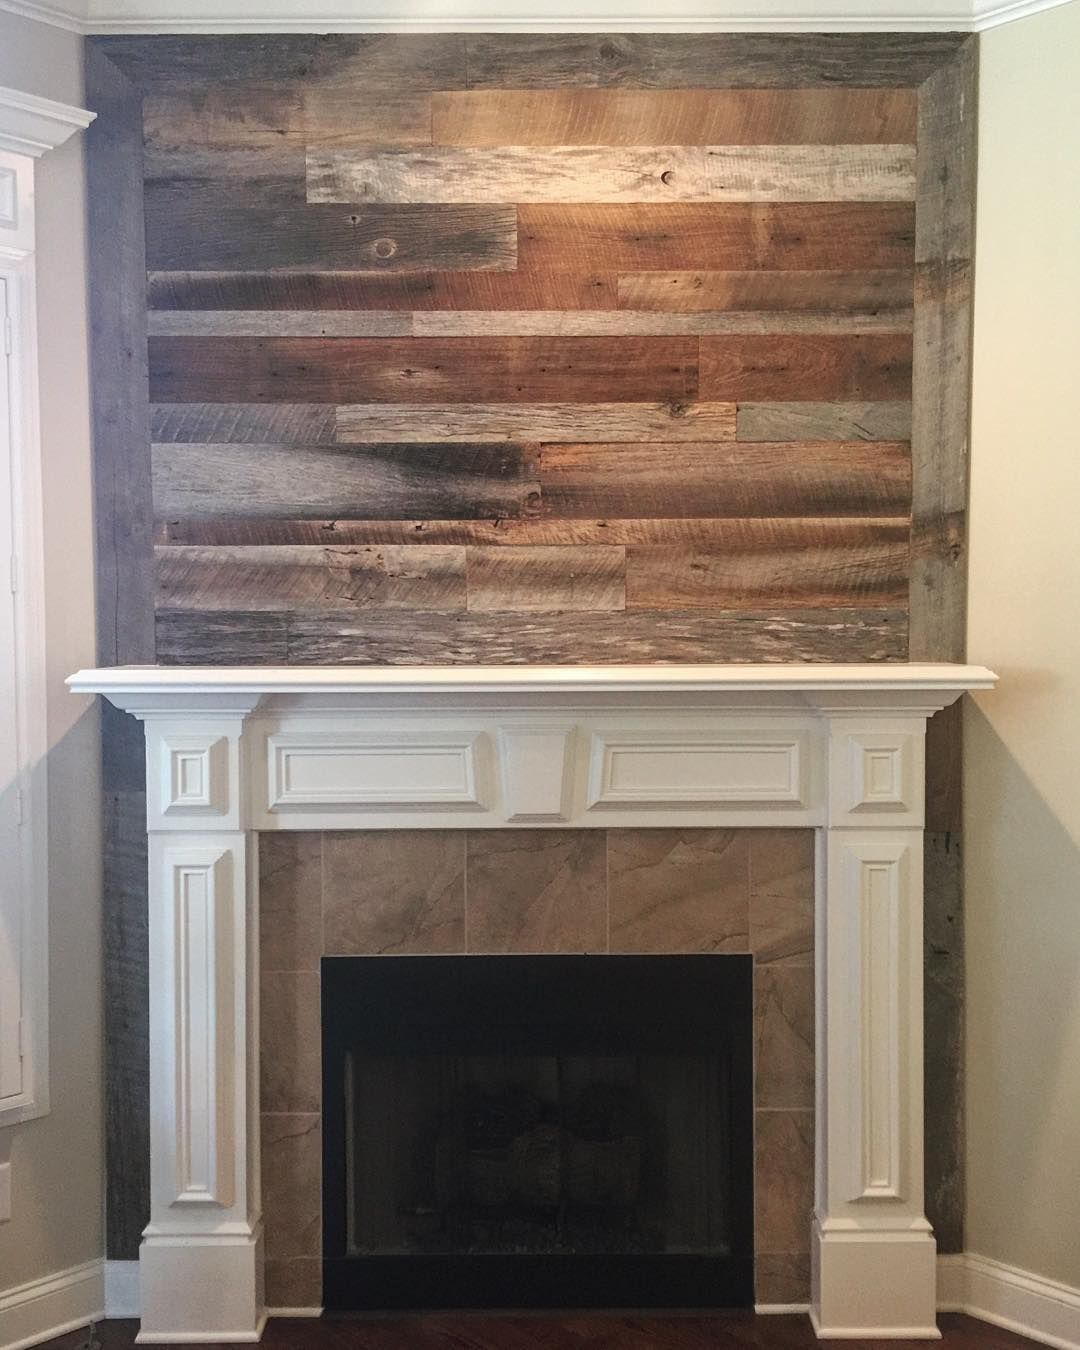 urbanwoodcoWe just wrapped up this barn wood accent wall install     urbanwoodcoWe just wrapped up this barn wood accent wall install  Our wood  is hand picked by us  straight lined  and planed to 3 4